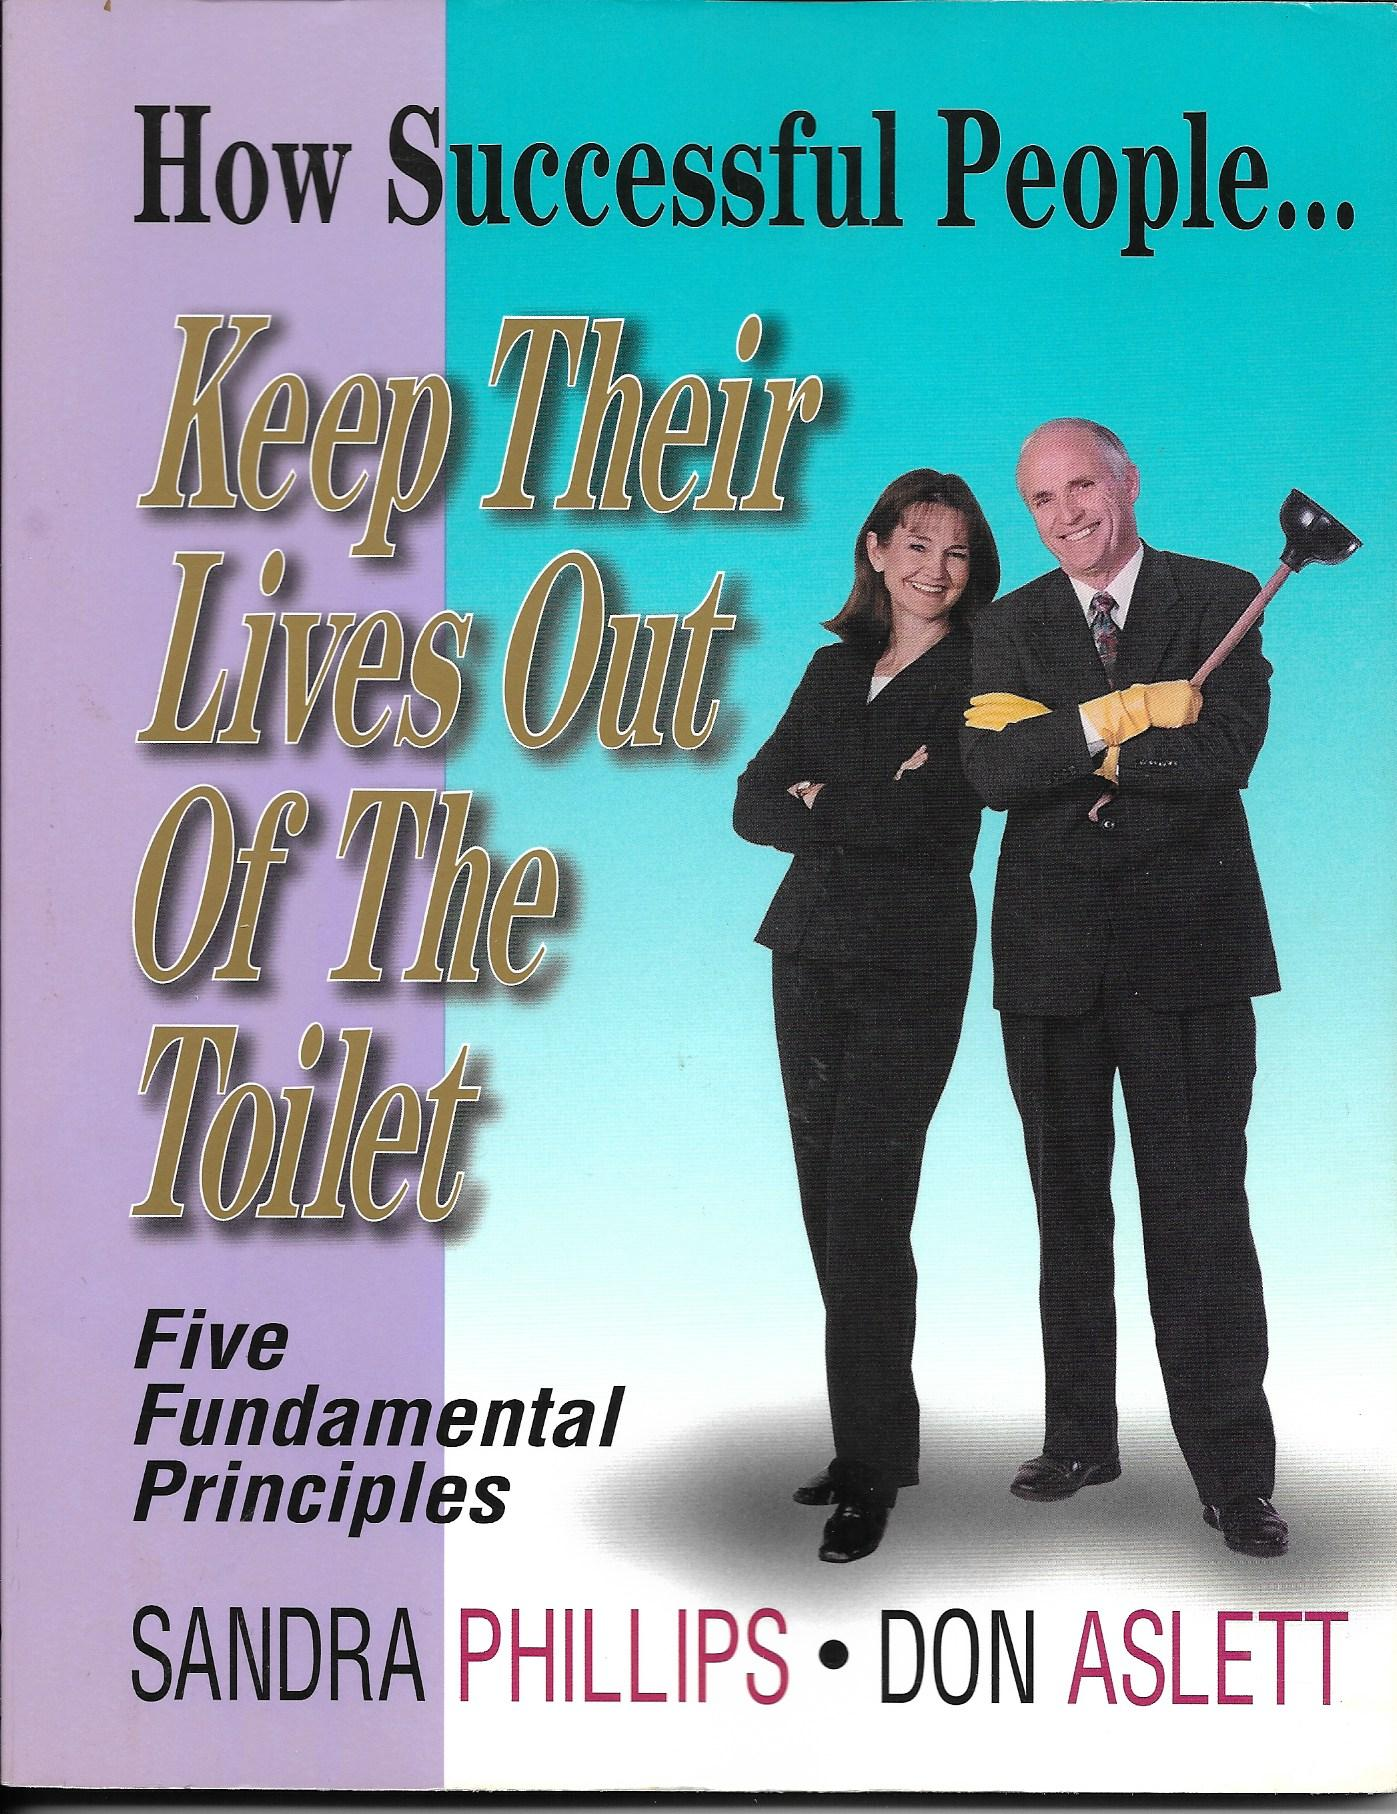 How successful people... Keep their lives out of the toilet